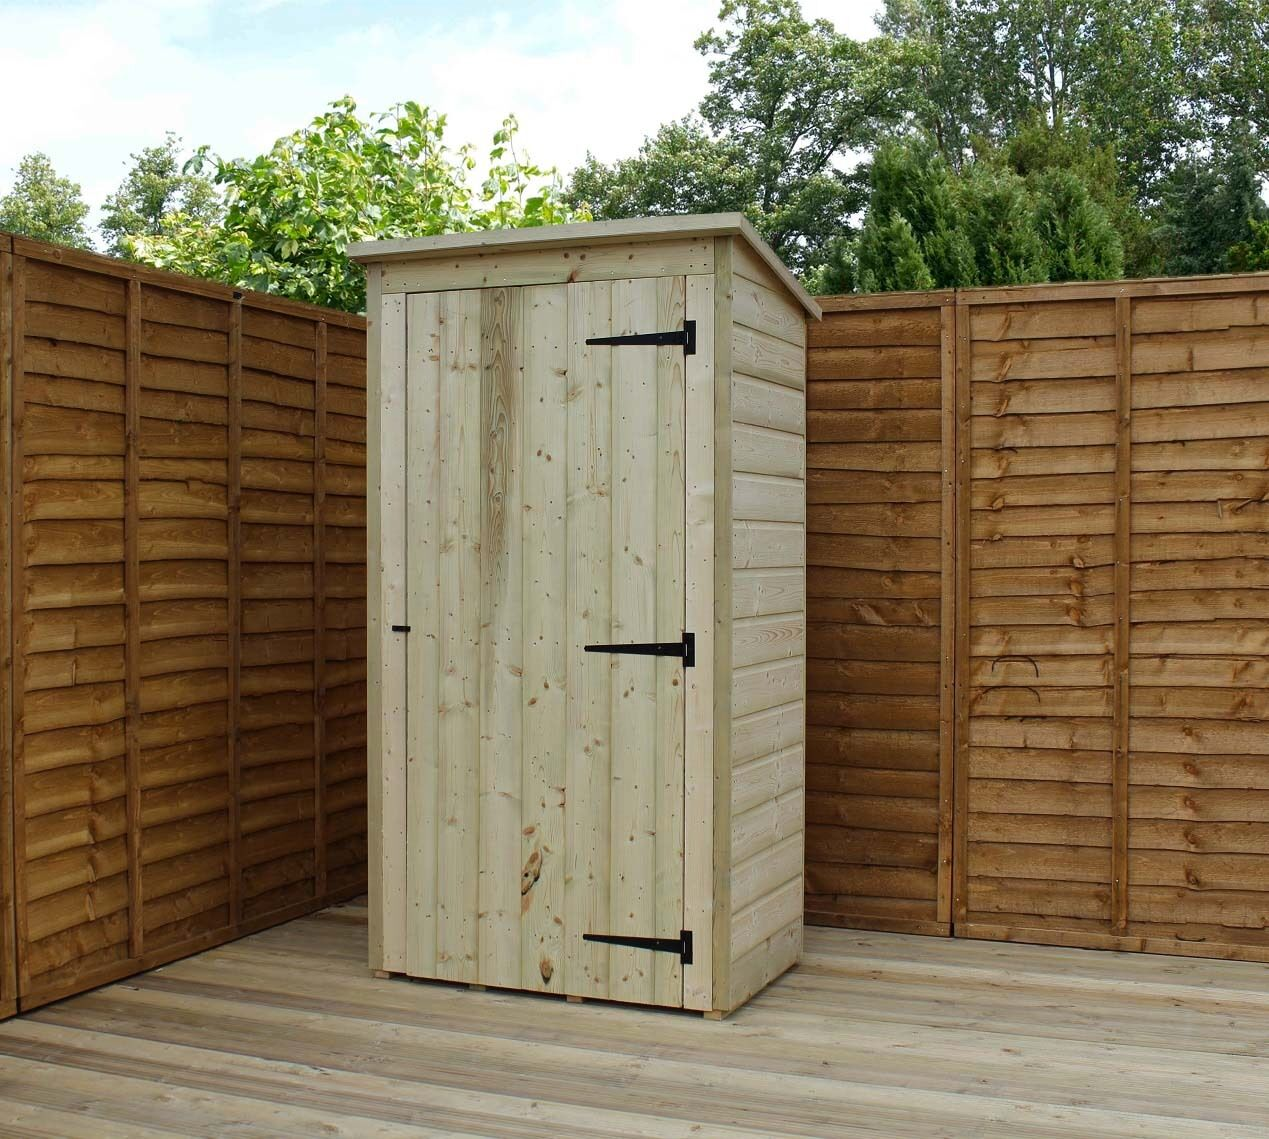 garden shed 3x2 shiplap pent roof tanalised pressure treated